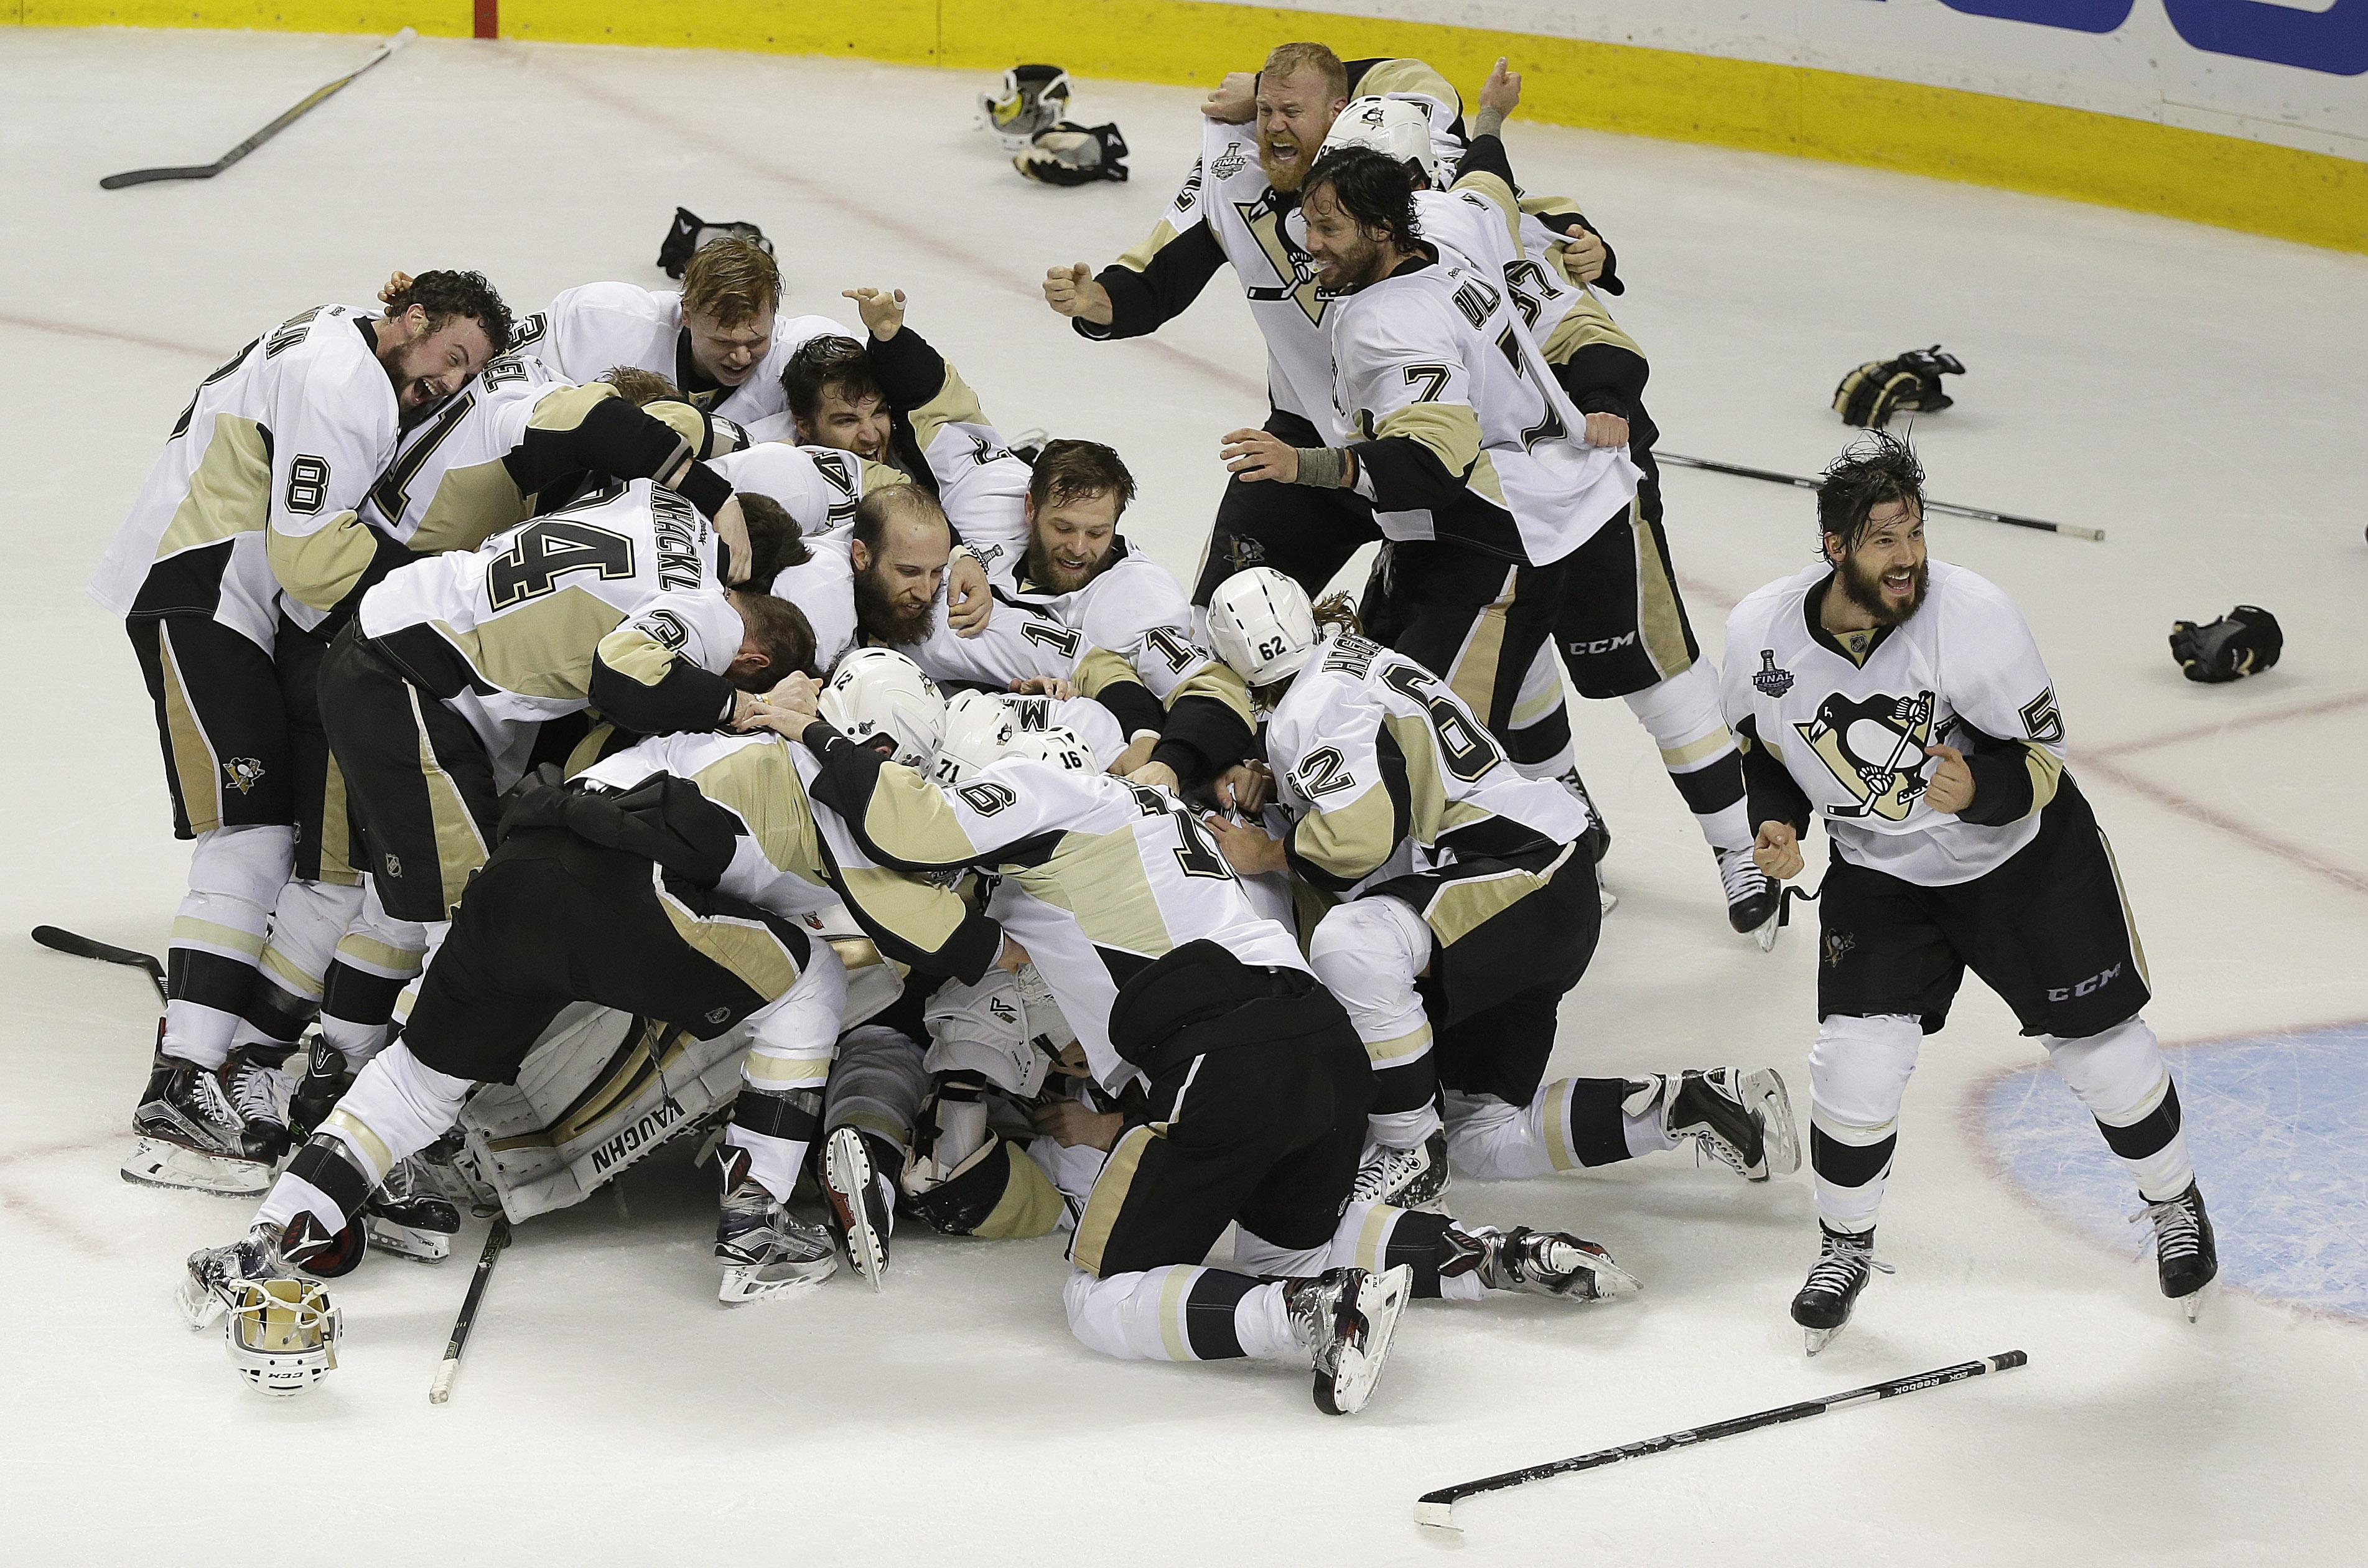 save off 27ba5 35a3e Pittsburgh Penguins beat San Jose Sharks 3-1 for 4th Stanley ...